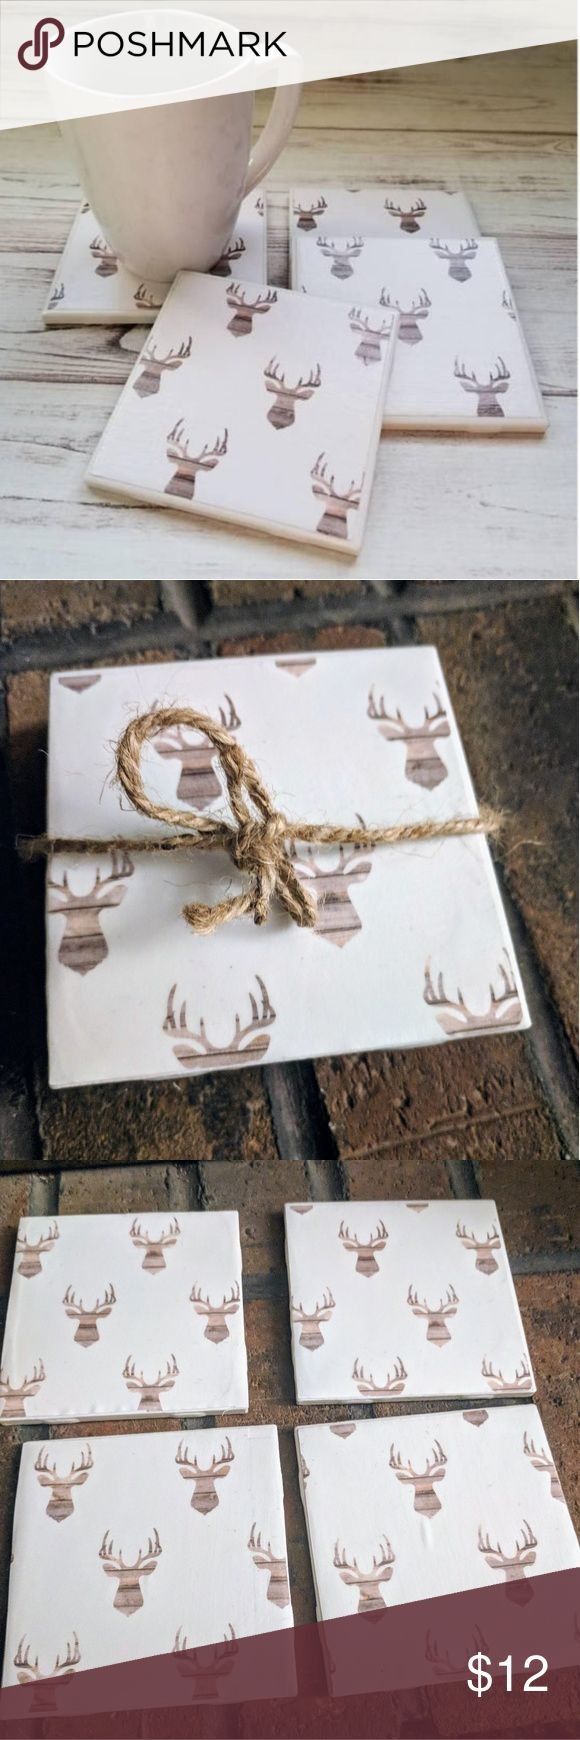 Deer Head Ceramic Coasters Tile Coasters set of 4. Size 4x4x4. Rustic Home Coasters. They make for a unique and memorable gift - or you can purchase for yourself, why not? They will make a perfect addition to the Farmhouse.They have a gloss finish. You could also display the tiles in your home, office or family room! They include 4 medium duty felt pads on the back surface to prevent any scratches. Clean them with a damp cloth or wipe. No dishwashing. Other